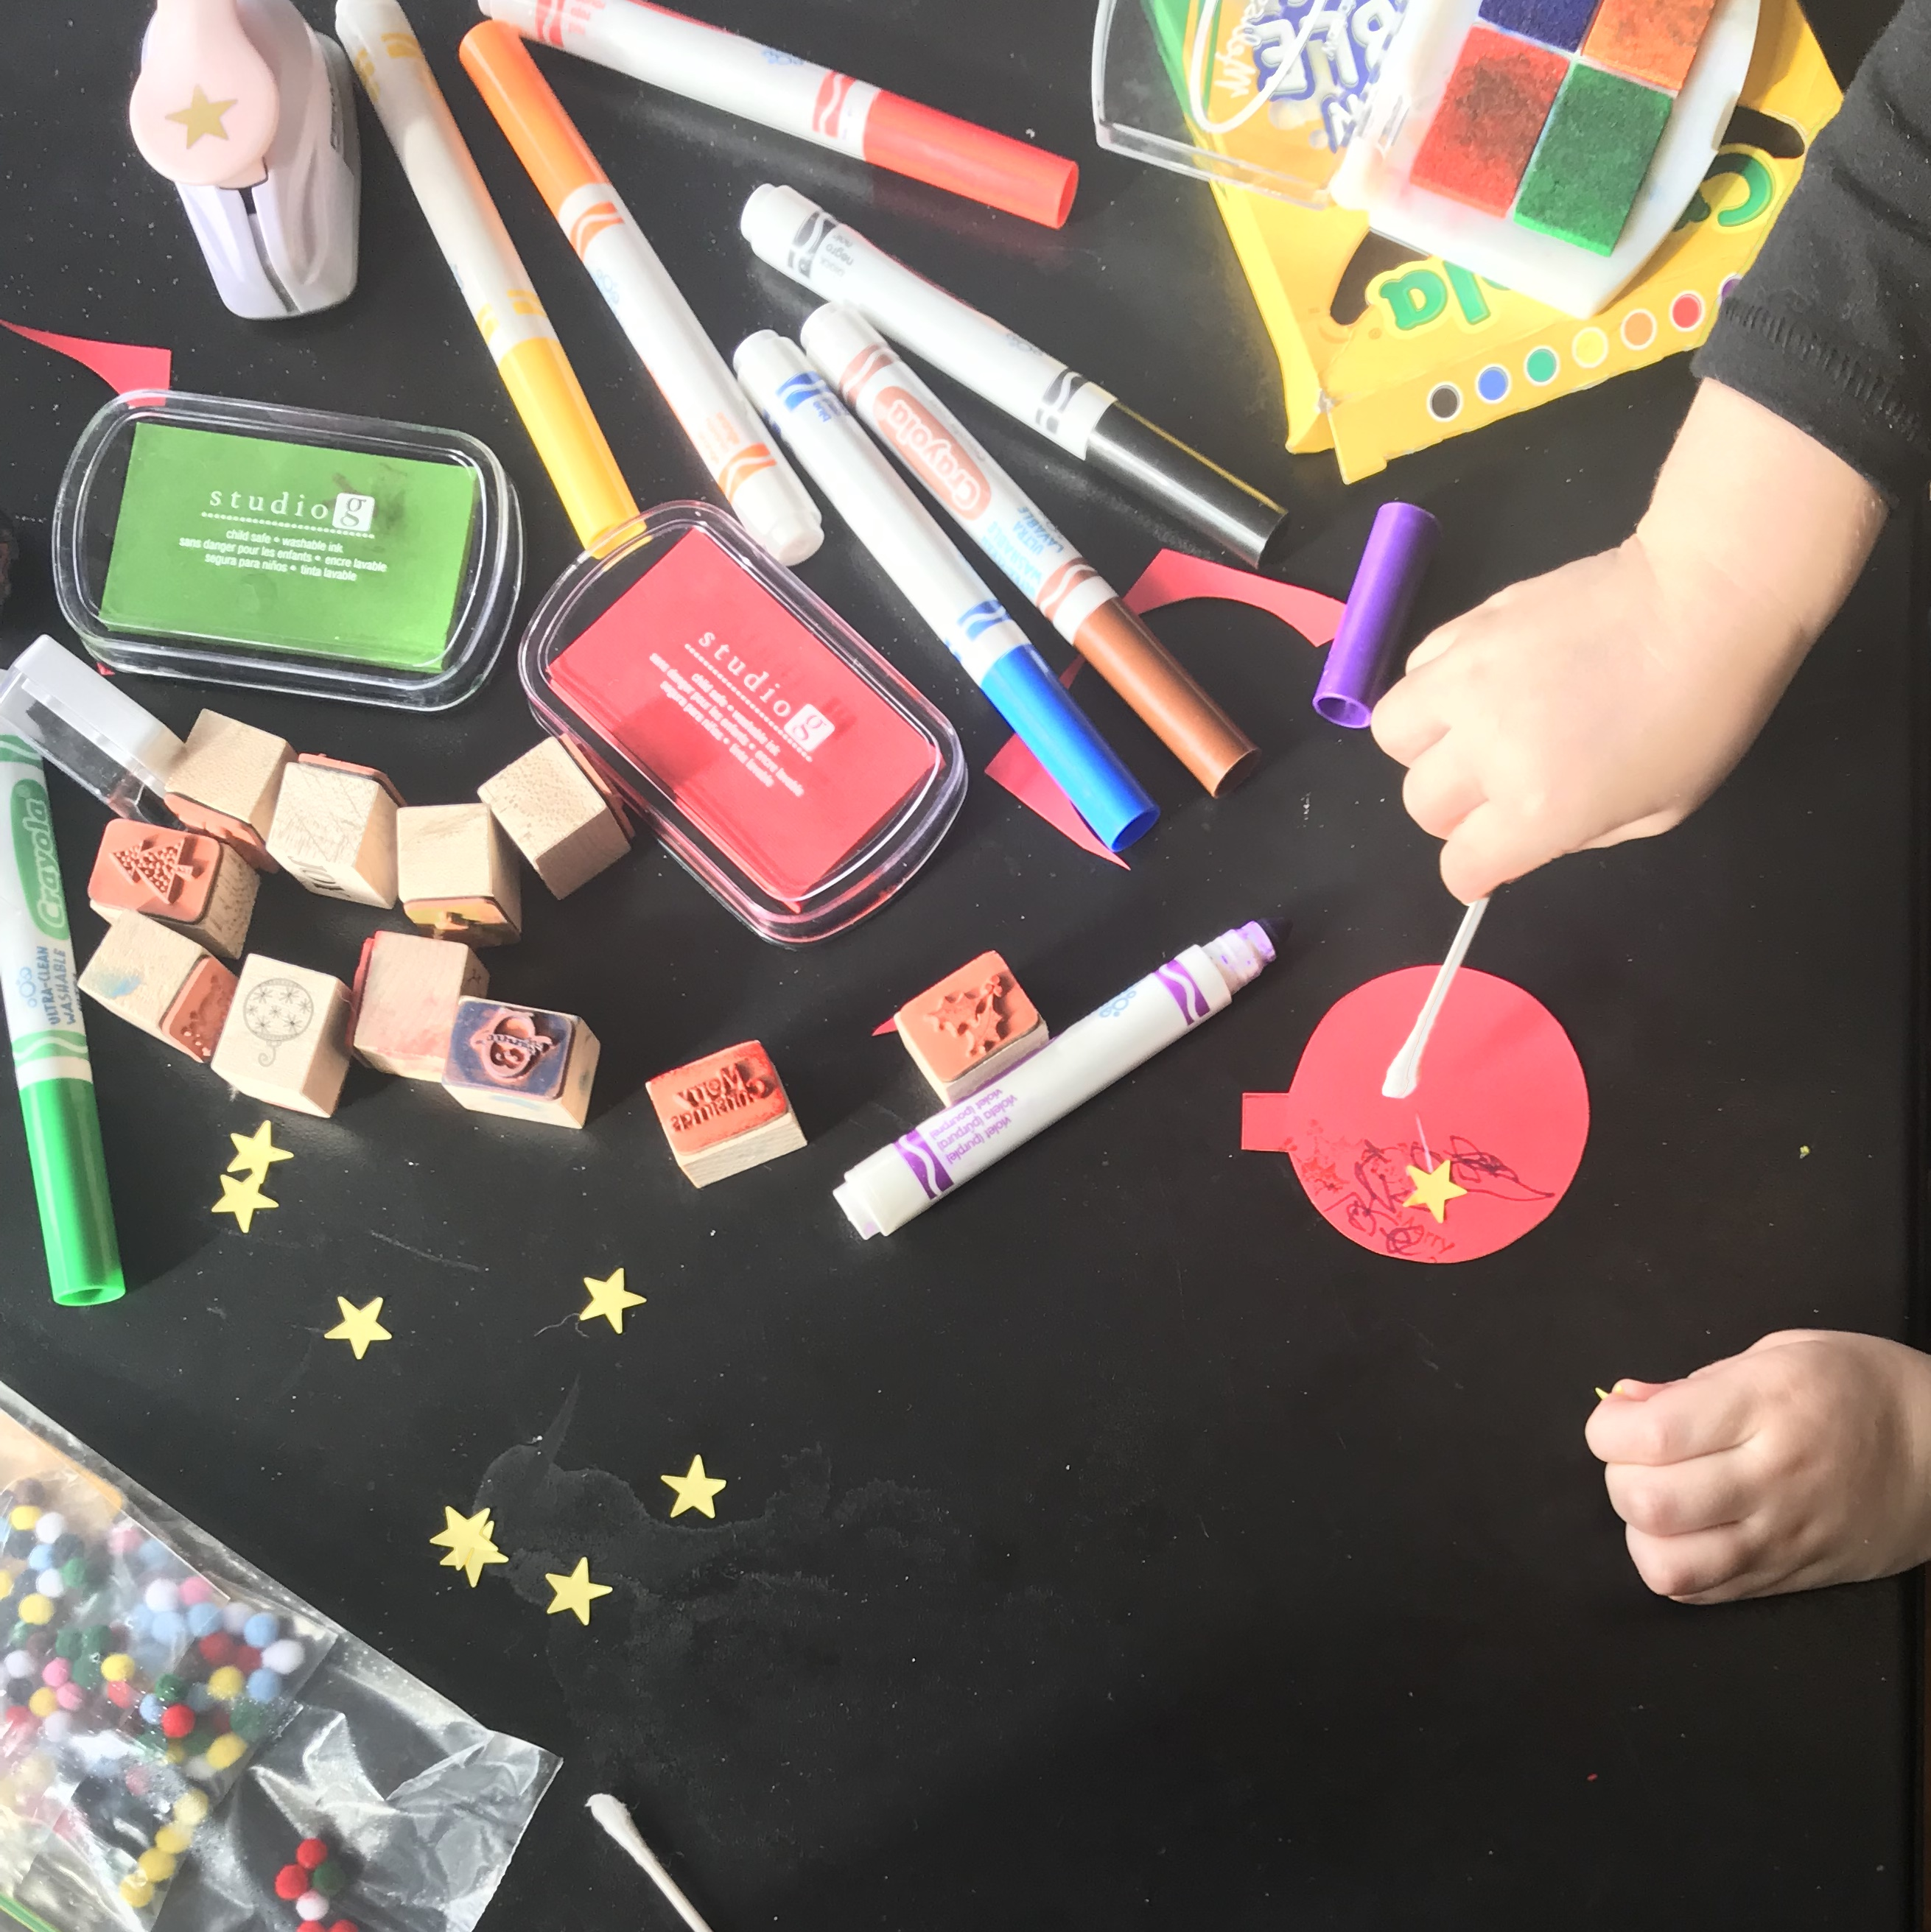 Toddler hands using q tip to apply glue, various art supplies spread out on table